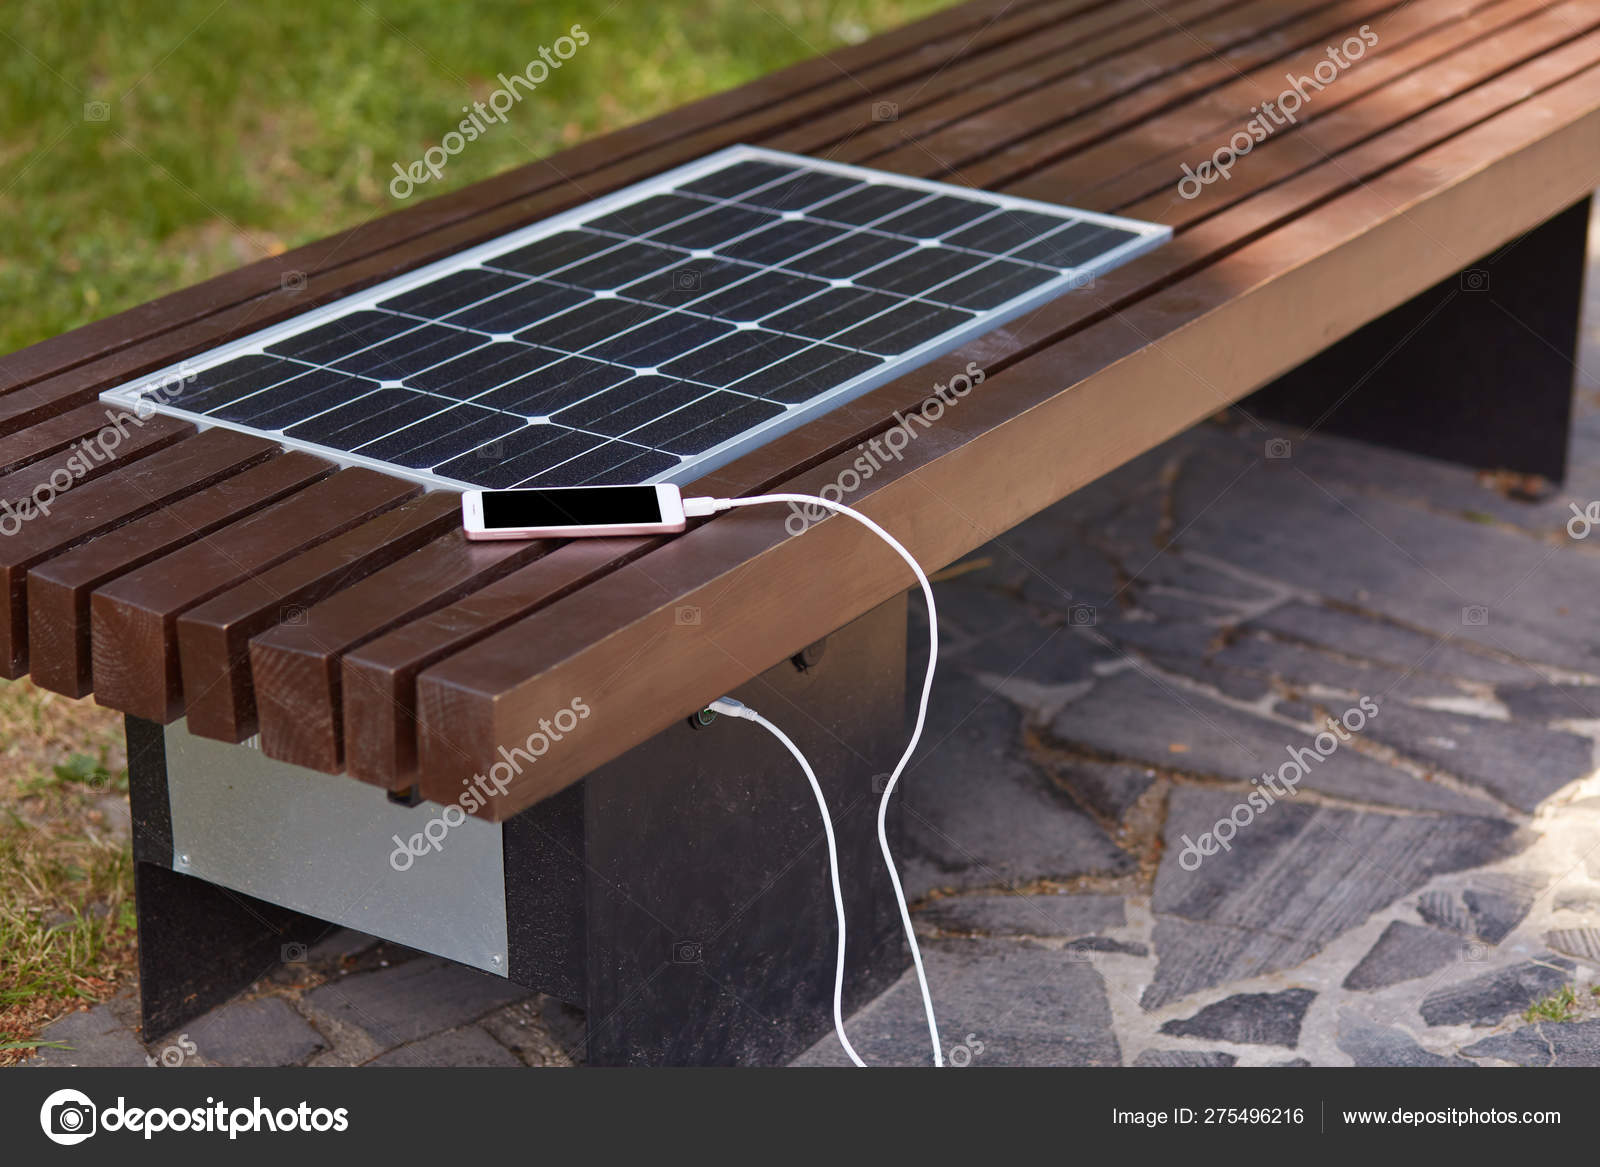 Swell Outdoor Shot Of Bench With Smart Phone Being Charged Via Usb Pdpeps Interior Chair Design Pdpepsorg